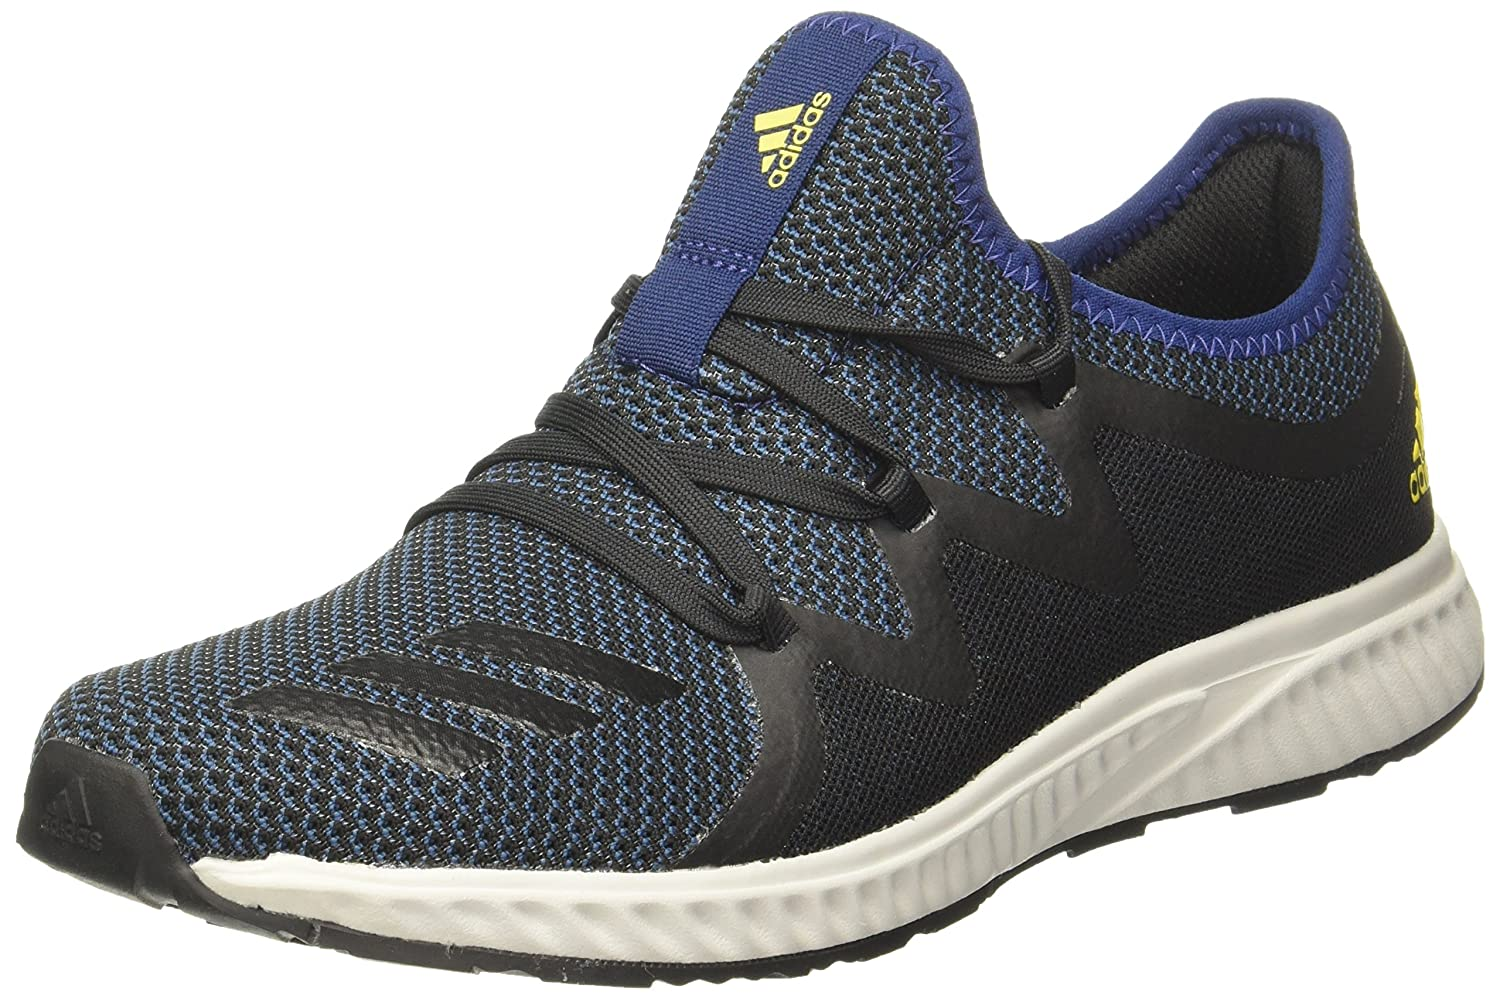 8a8f31fc64b75c Adidas Men s Manazero M Running Shoes  Buy Online at Low Prices in India -  Amazon.in